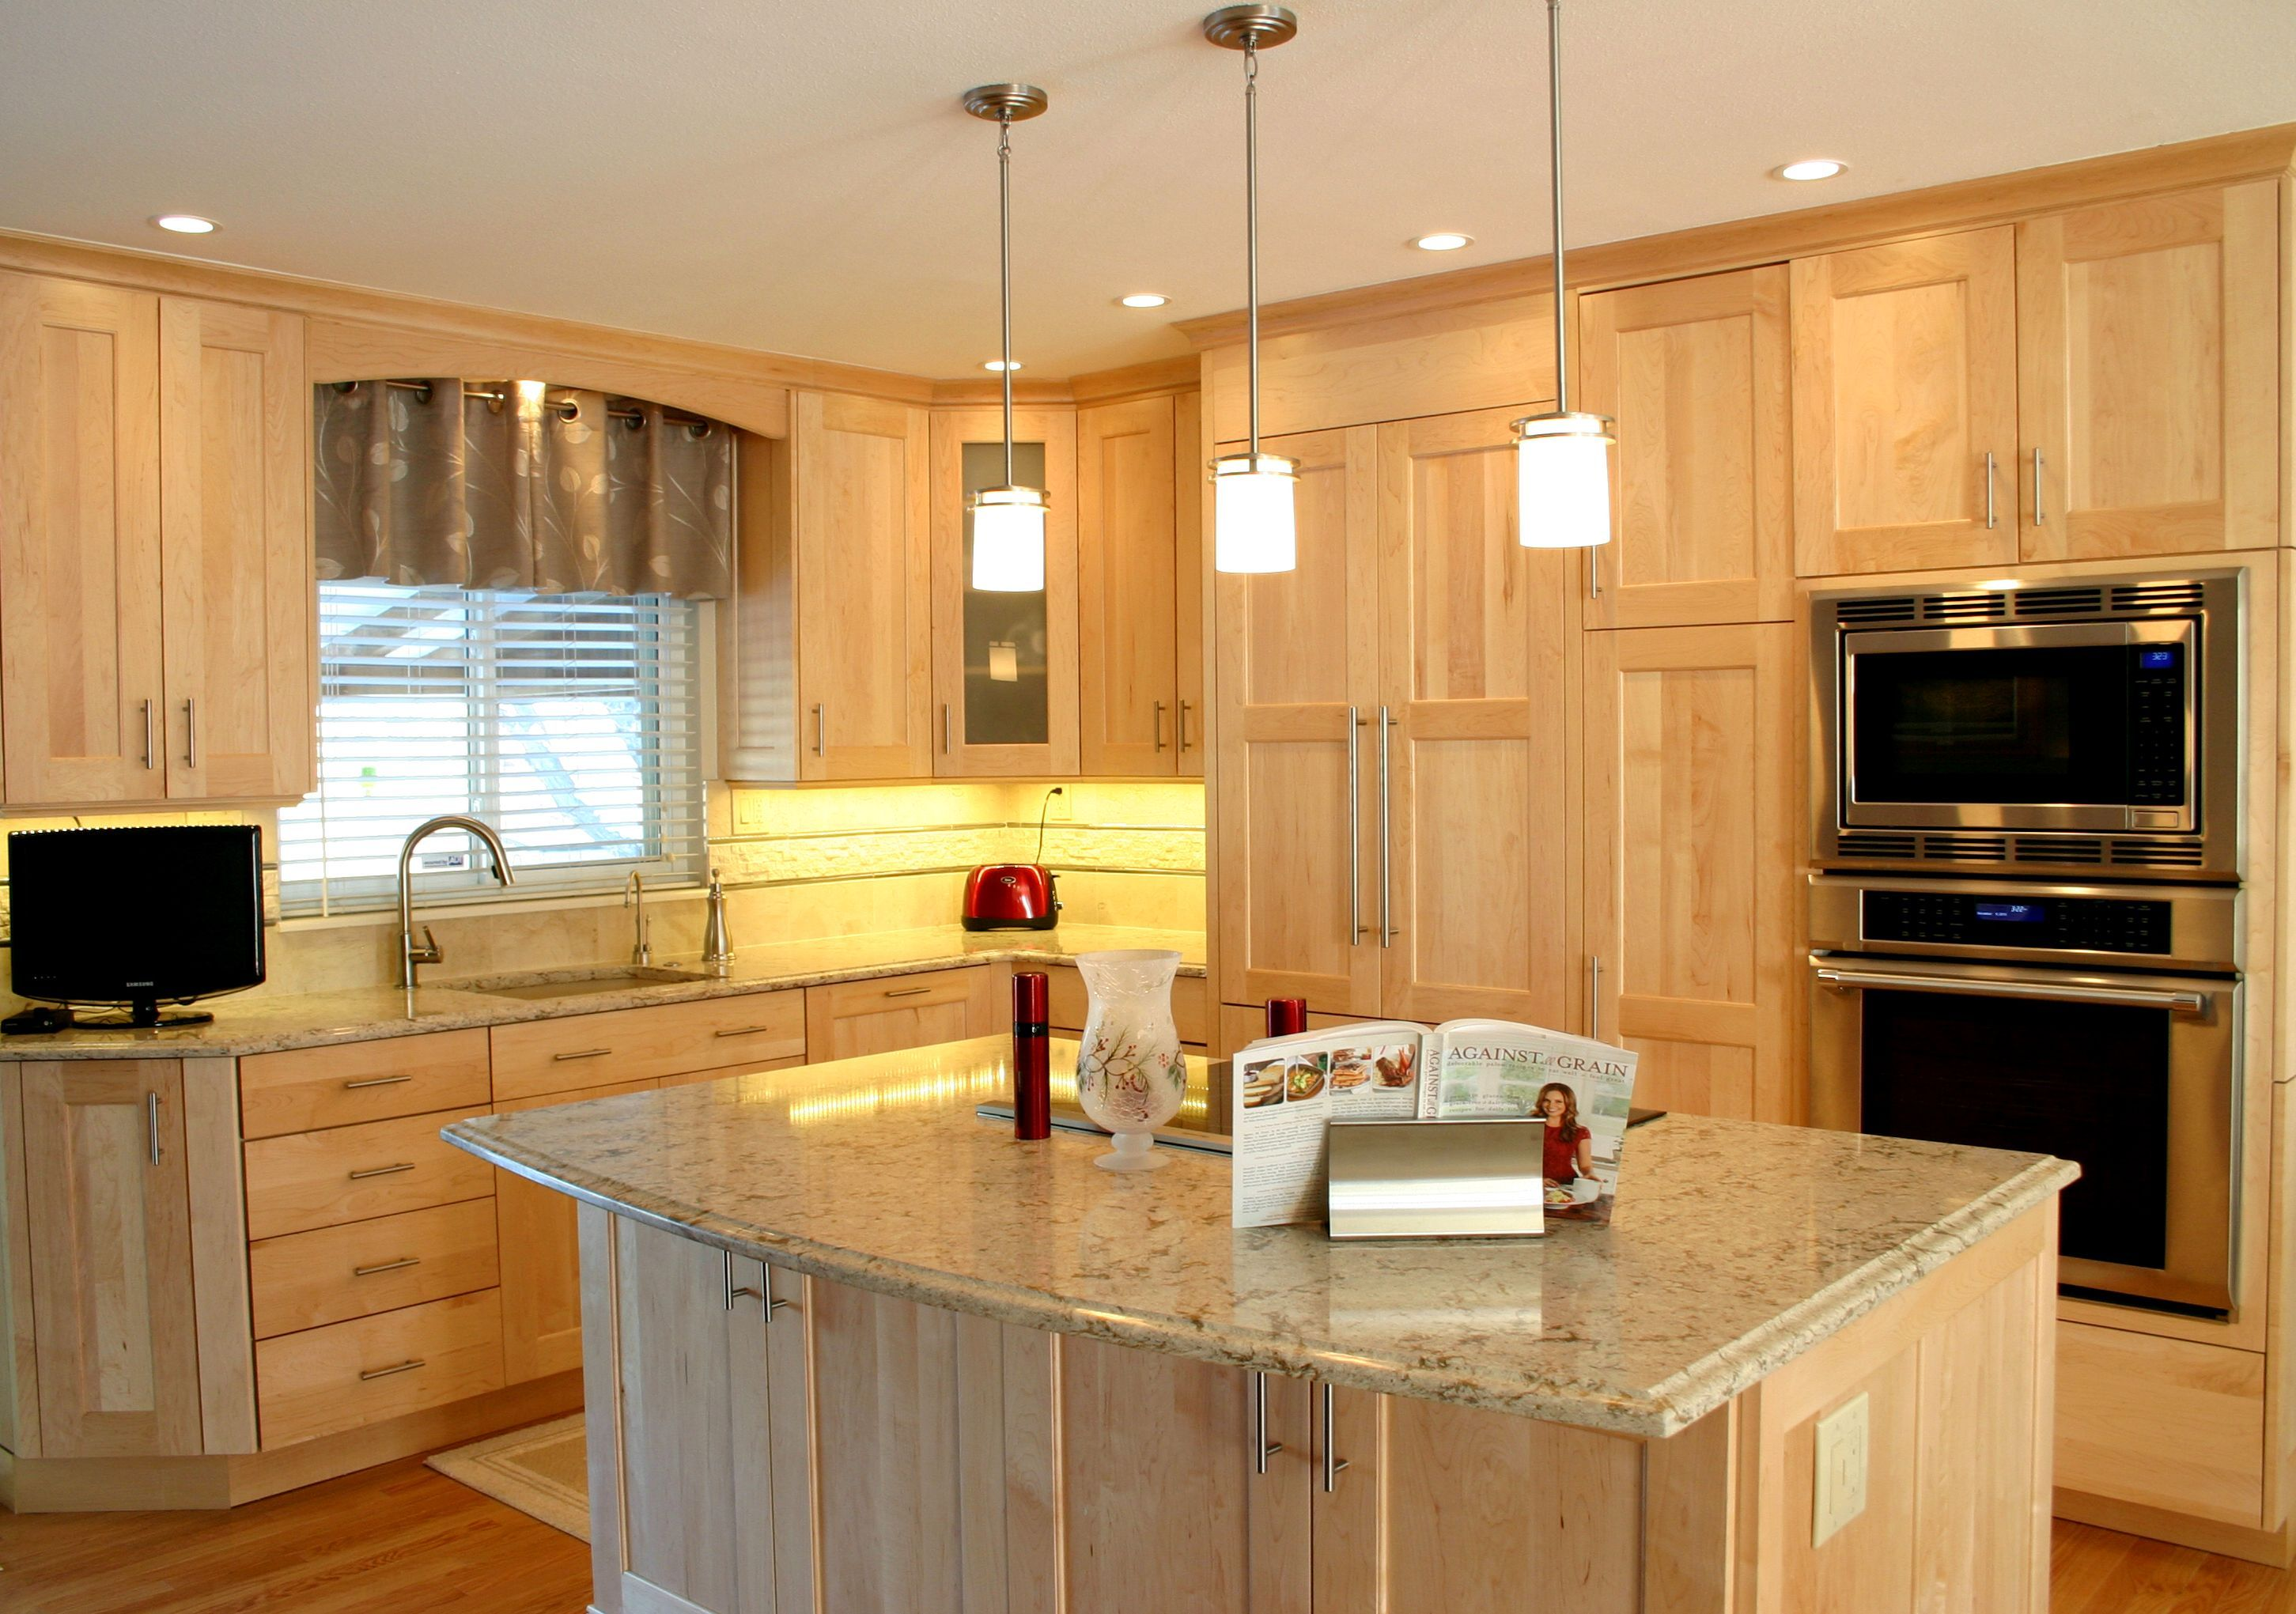 20babd328117d2f34b6910ac387c4374 Maple Cabinets With Kitchen Remodel Ideas on kitchen remodel with white appliances, small kitchen design ideas with white cabinets, kitchen cabinet remodel ideas, kitchen remodel with columns, kitchen remodel with wood floors, kitchen remodel with high ceilings, kitchen remodel with breakfast nook, kitchen remodel with vaulted ceilings, kitchen remodel with windows, kitchen remodel with pantry, kitchen tiles floor with cherry cabinets, kitchen remodel ideas on a budget, kitchen remodel with island, kitchen remodel with family room, kitchen cherry cabinets granite, kitchen remodel with breakfast bar, cherry maple kitchen cabinets, kitchen remodel with dining area, kitchen remodel with granite, white maple kitchen cabinets,